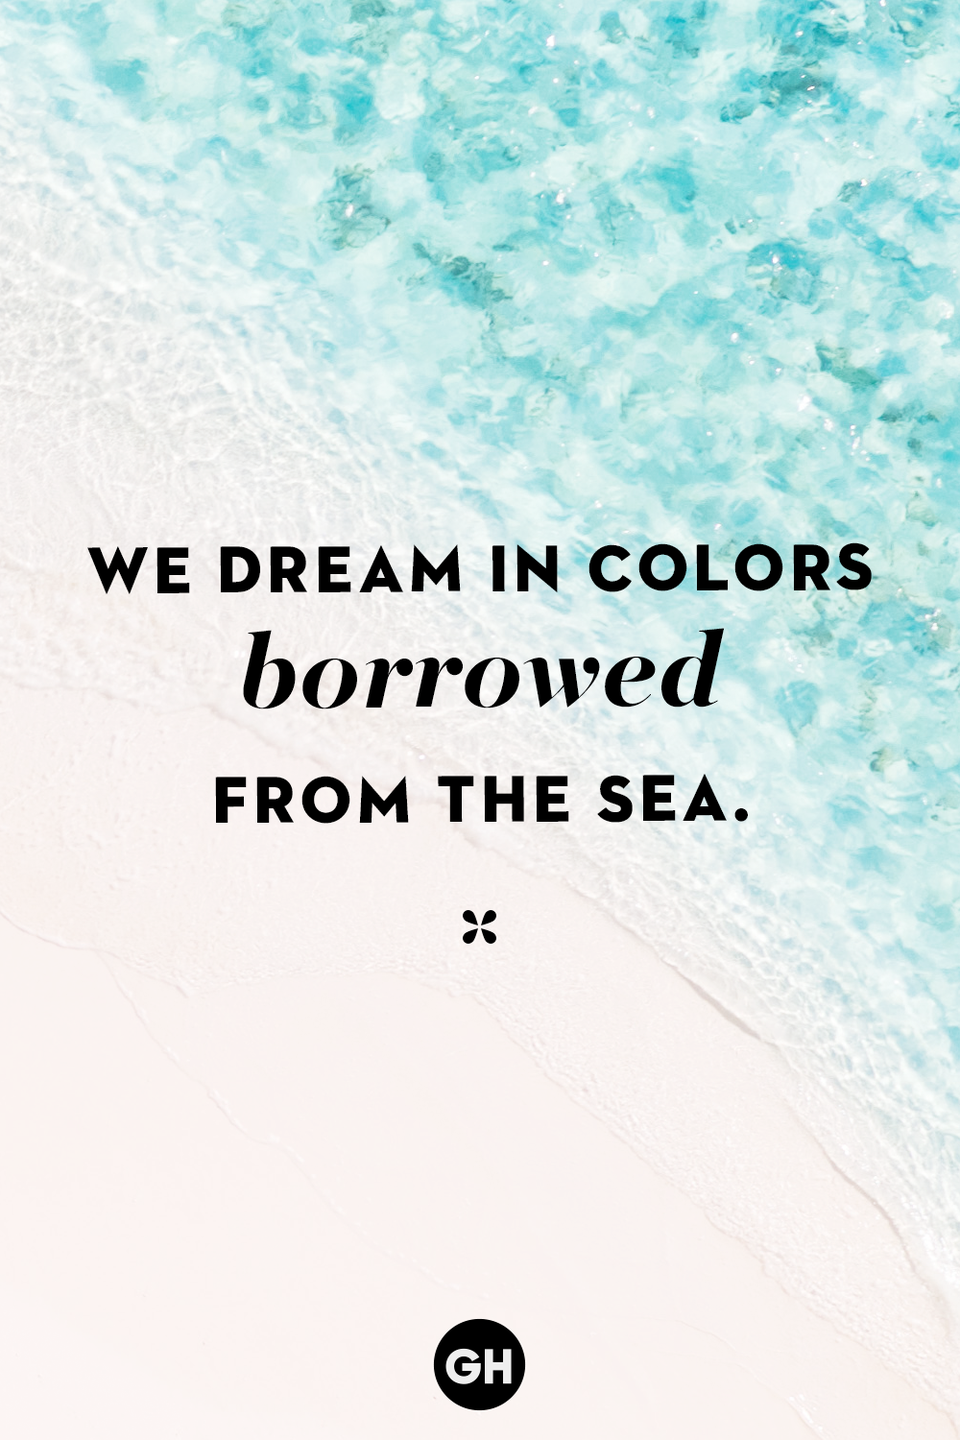 <p>We dream in colors borrowed from the sea.</p>